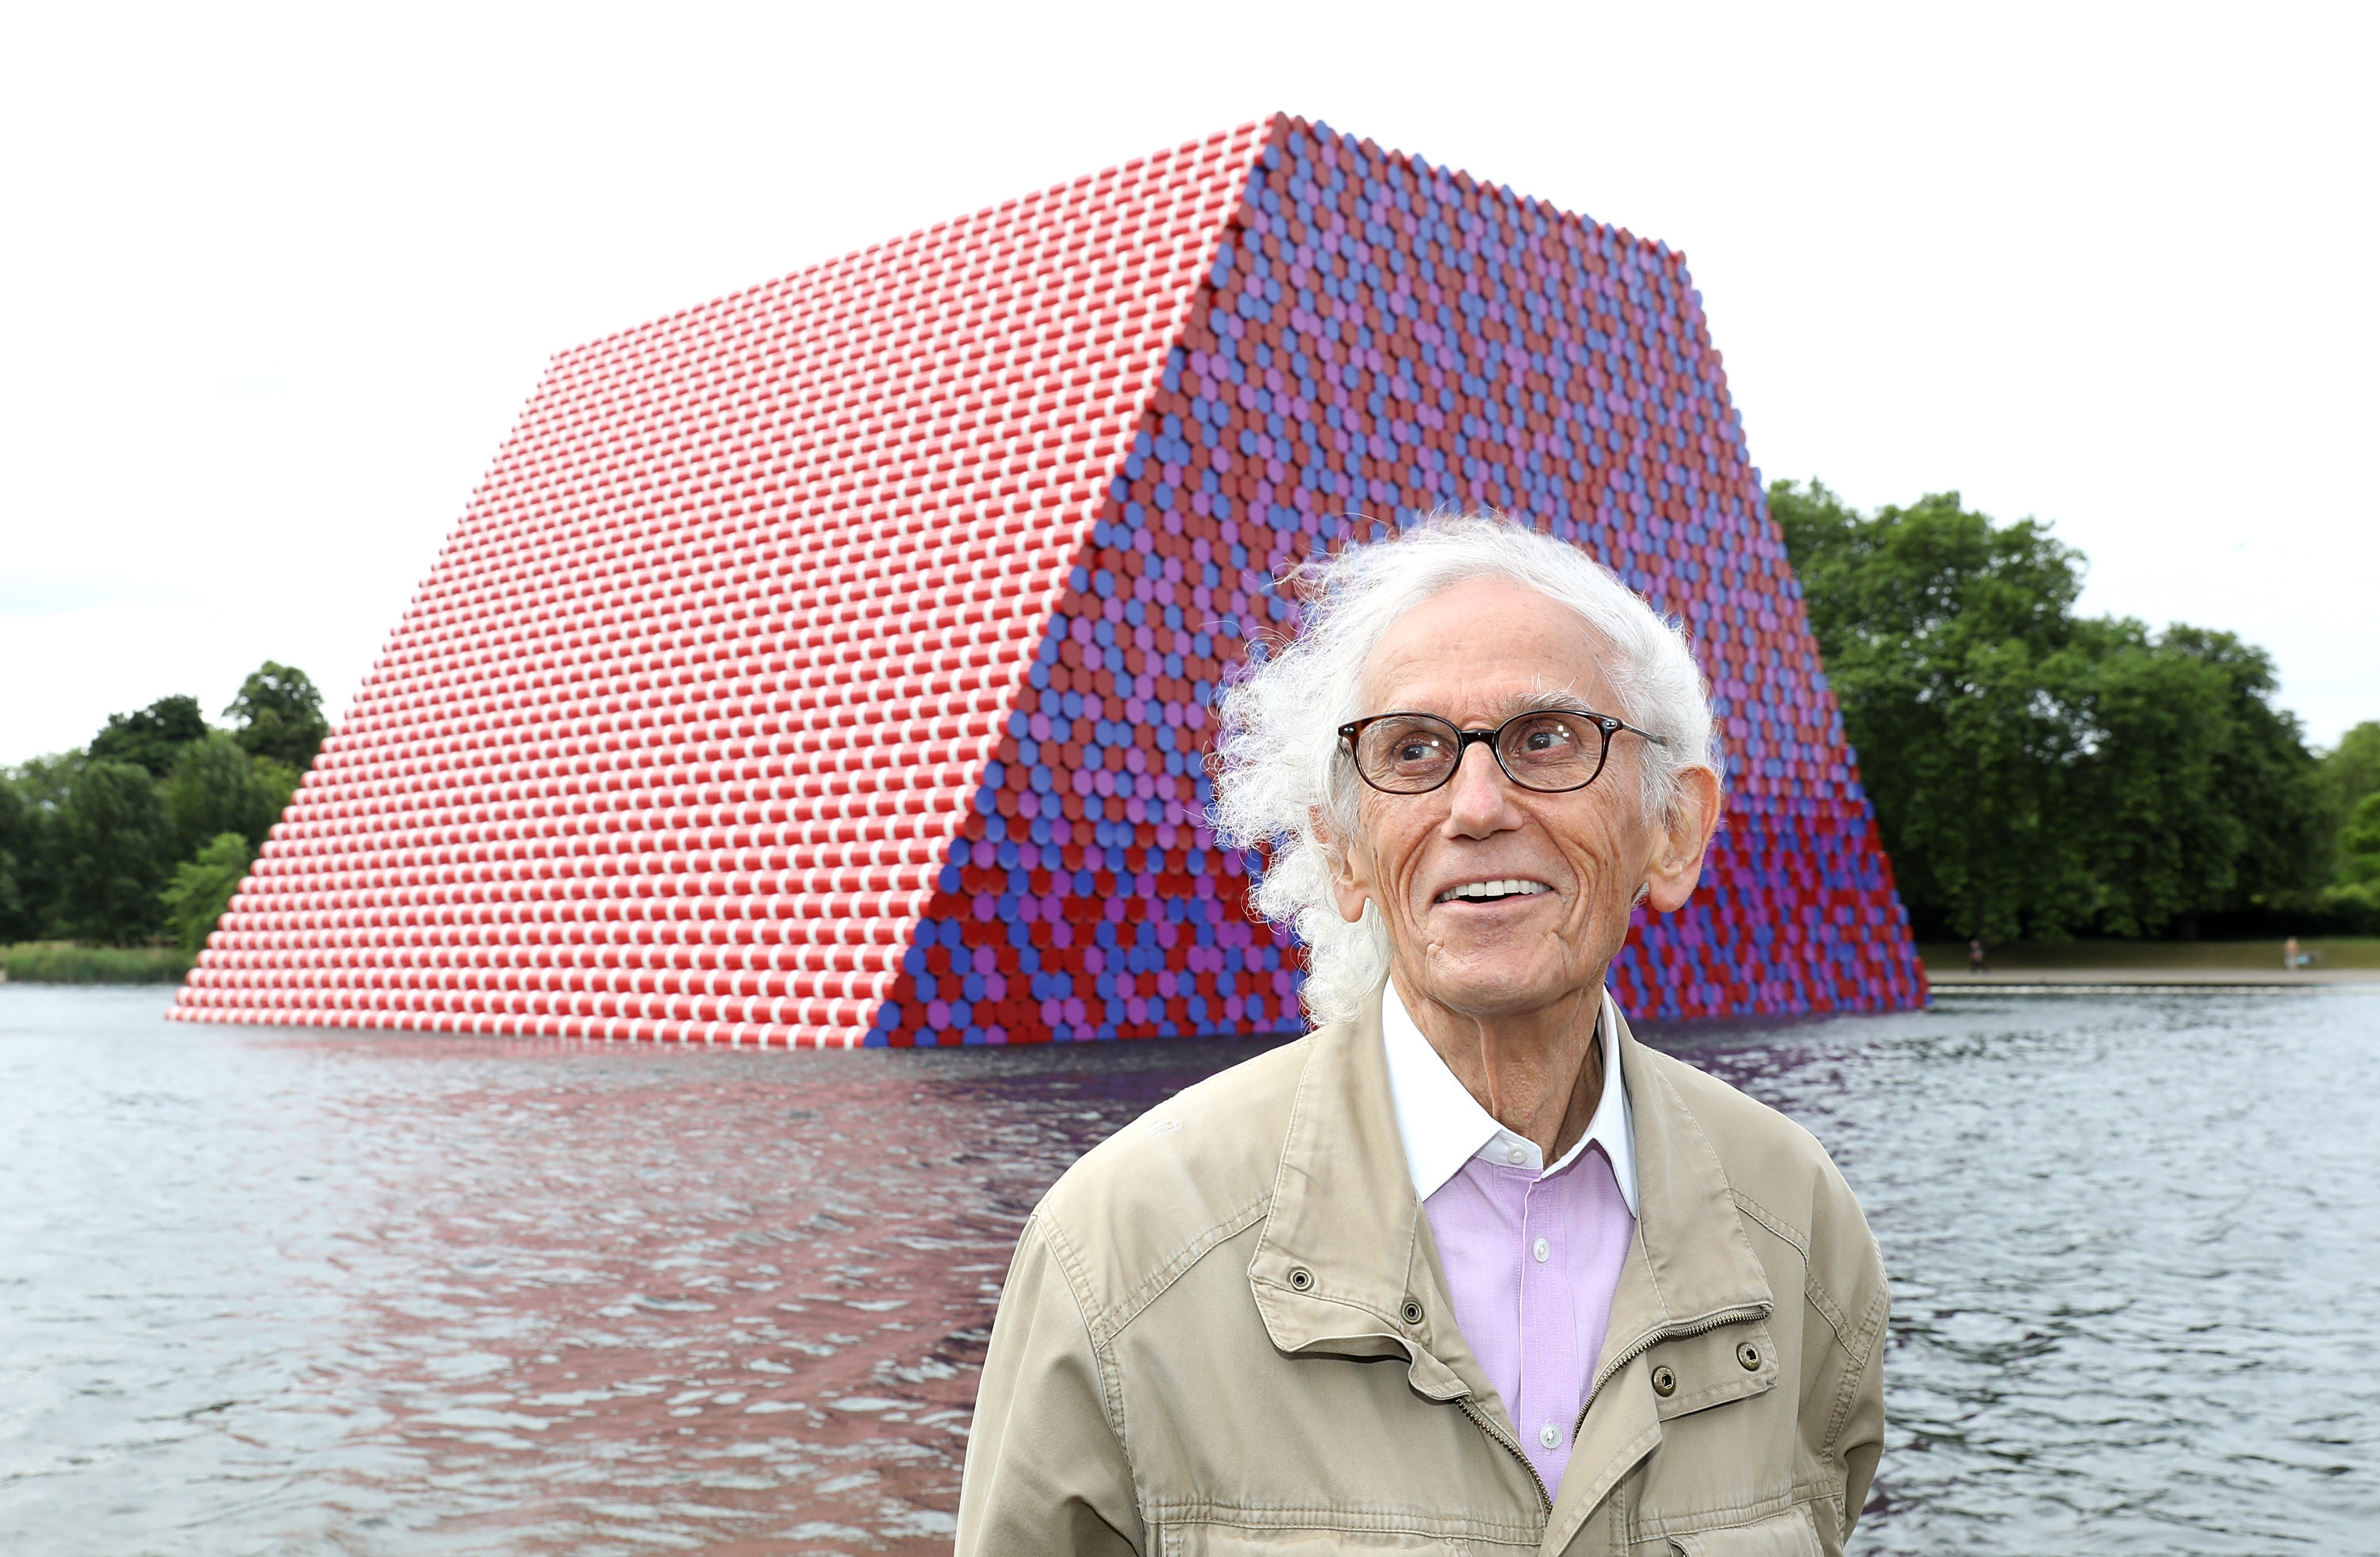 Christo: artist who made monumental art around the world, has died ...